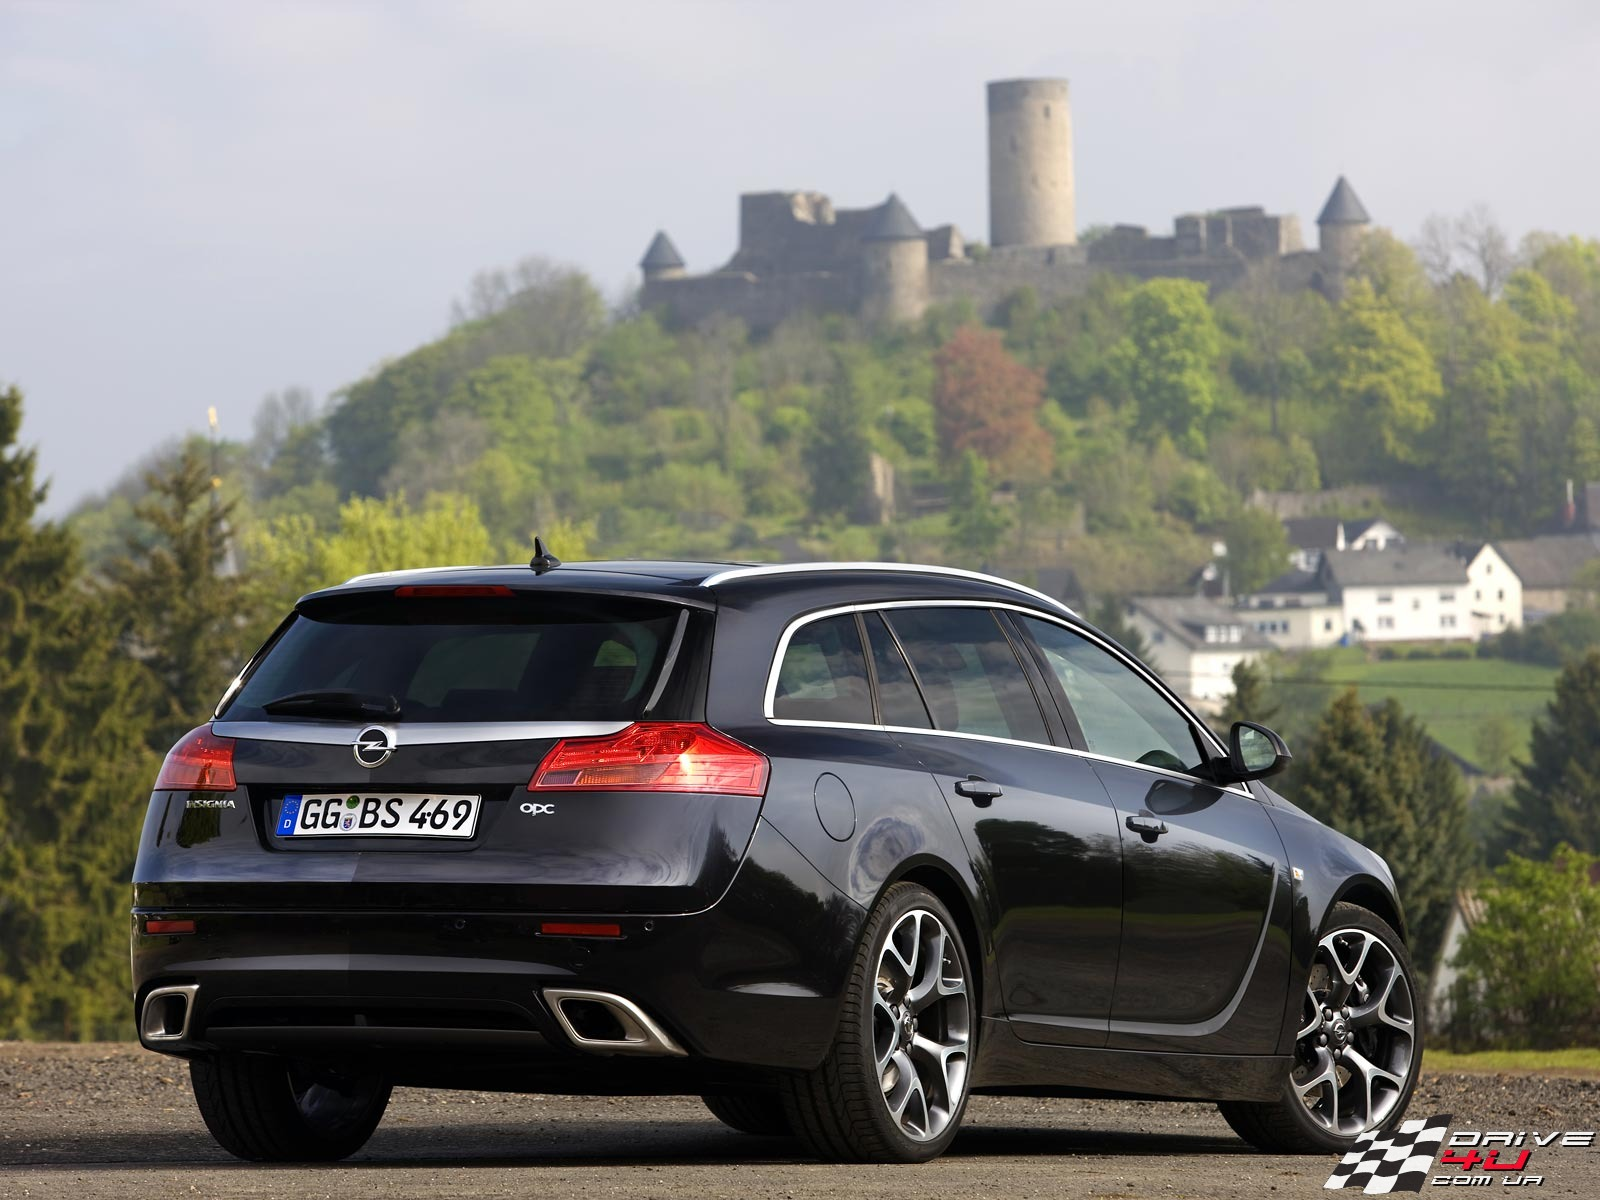 free cars hd wallpapers opel insignia tuning hd wallpapers. Black Bedroom Furniture Sets. Home Design Ideas